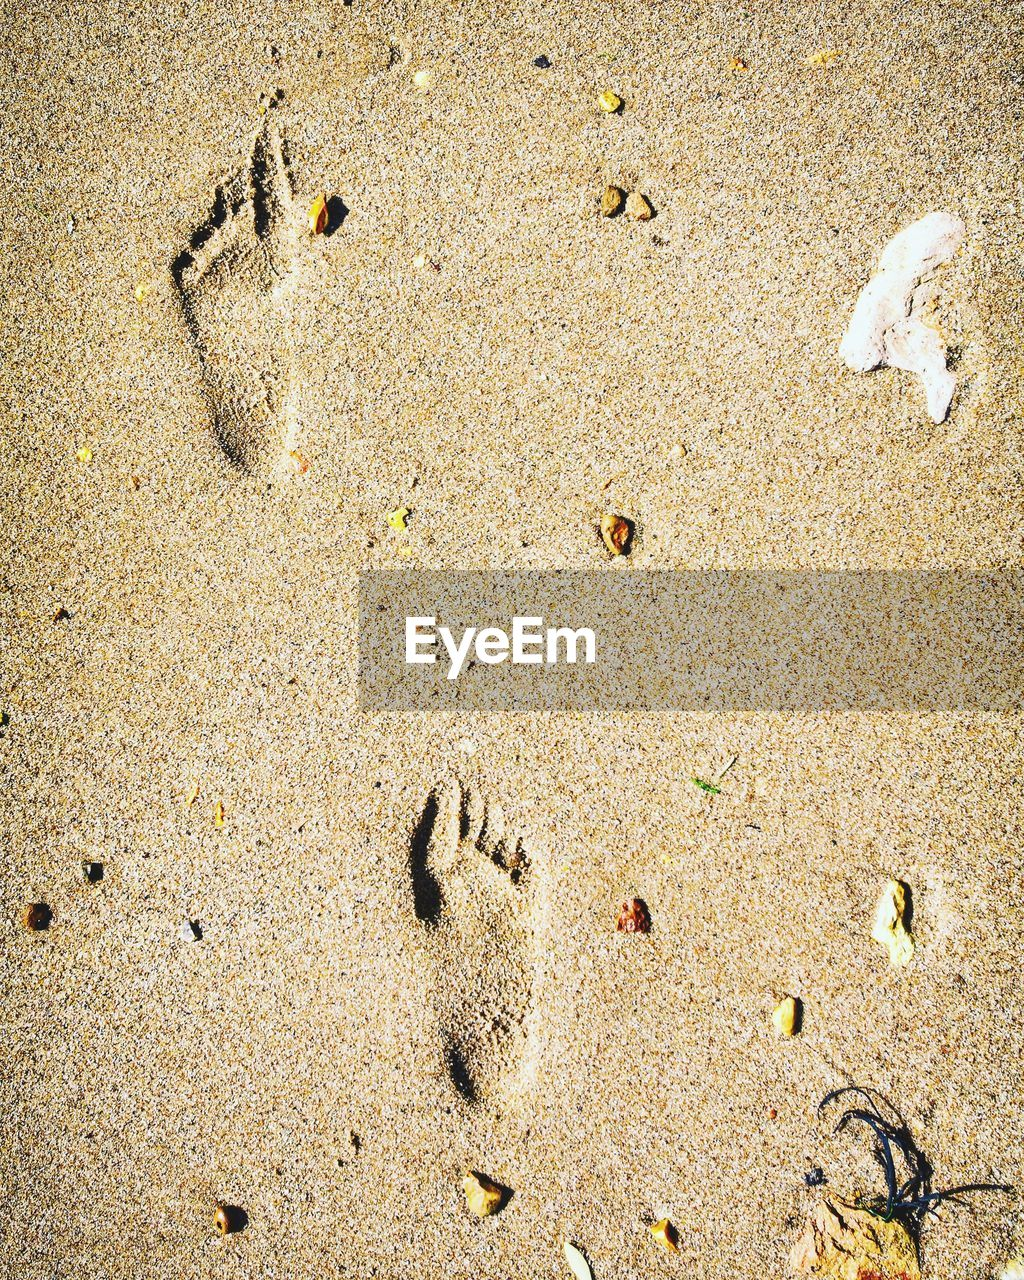 sand, land, beach, high angle view, nature, no people, footprint, day, full frame, sunlight, backgrounds, outdoors, paw print, directly above, print, close-up, tranquility, pattern, animal, track - imprint